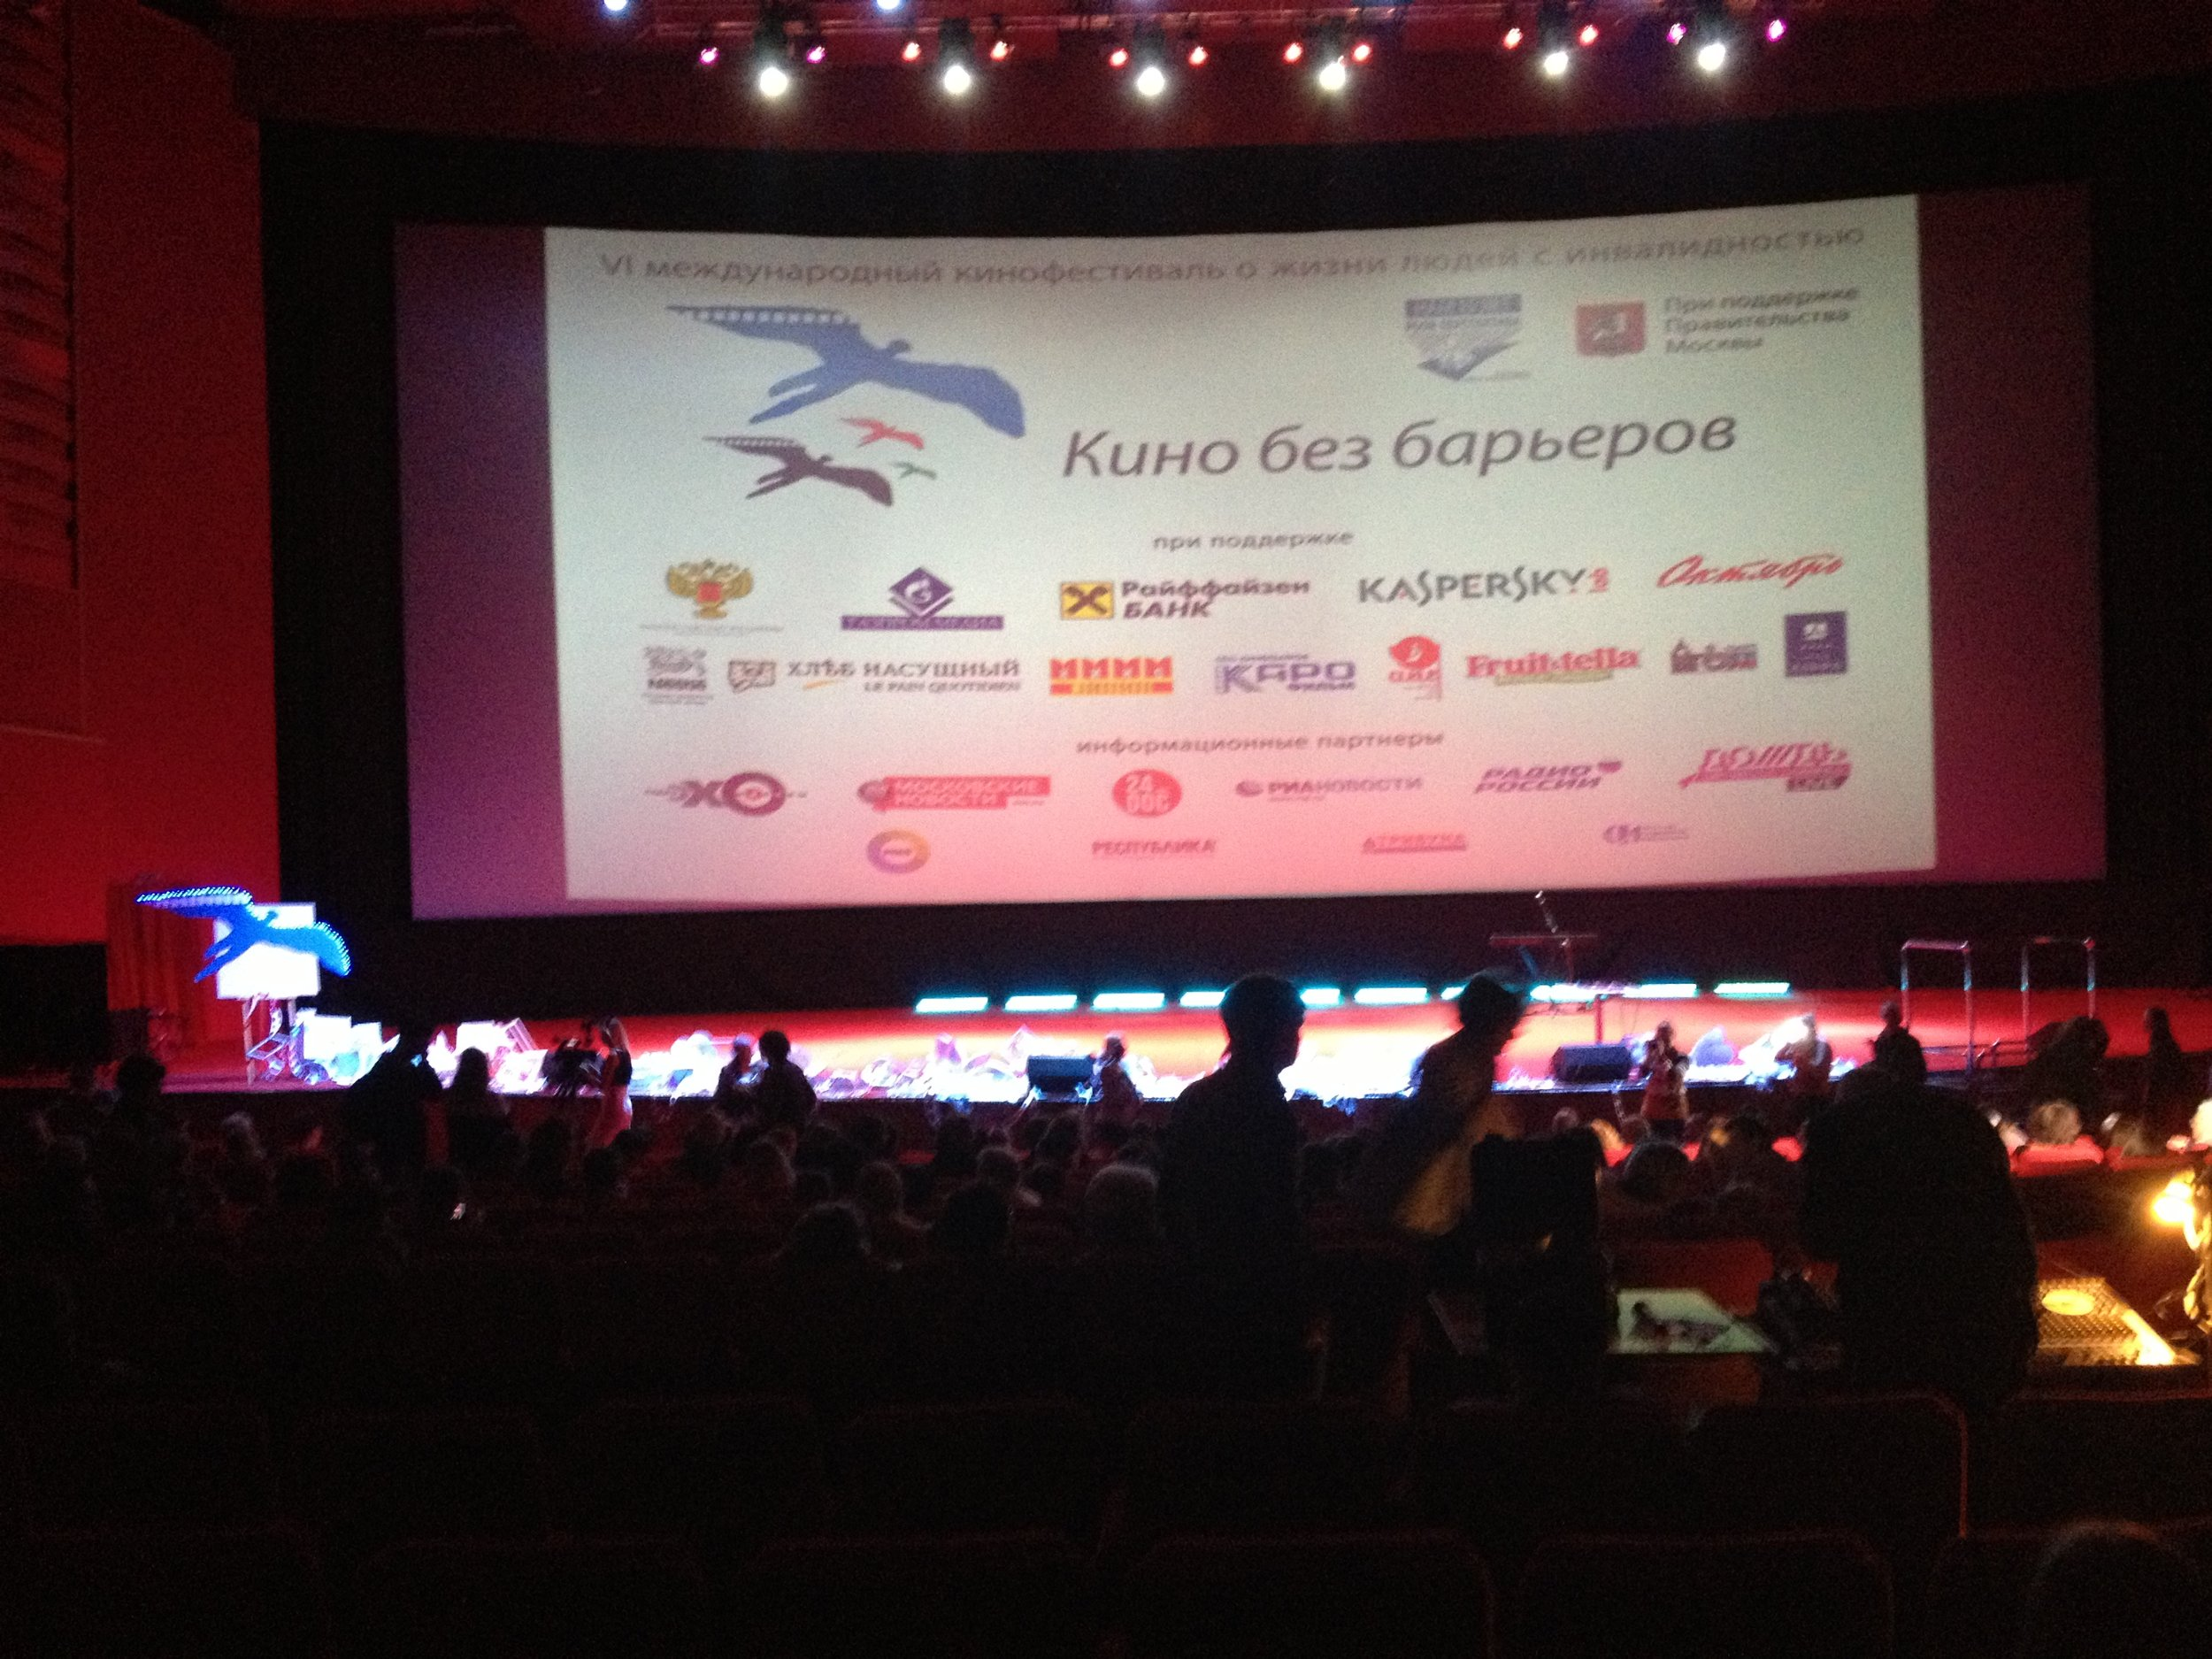 Full theatre at awards ceremony in Moscow.